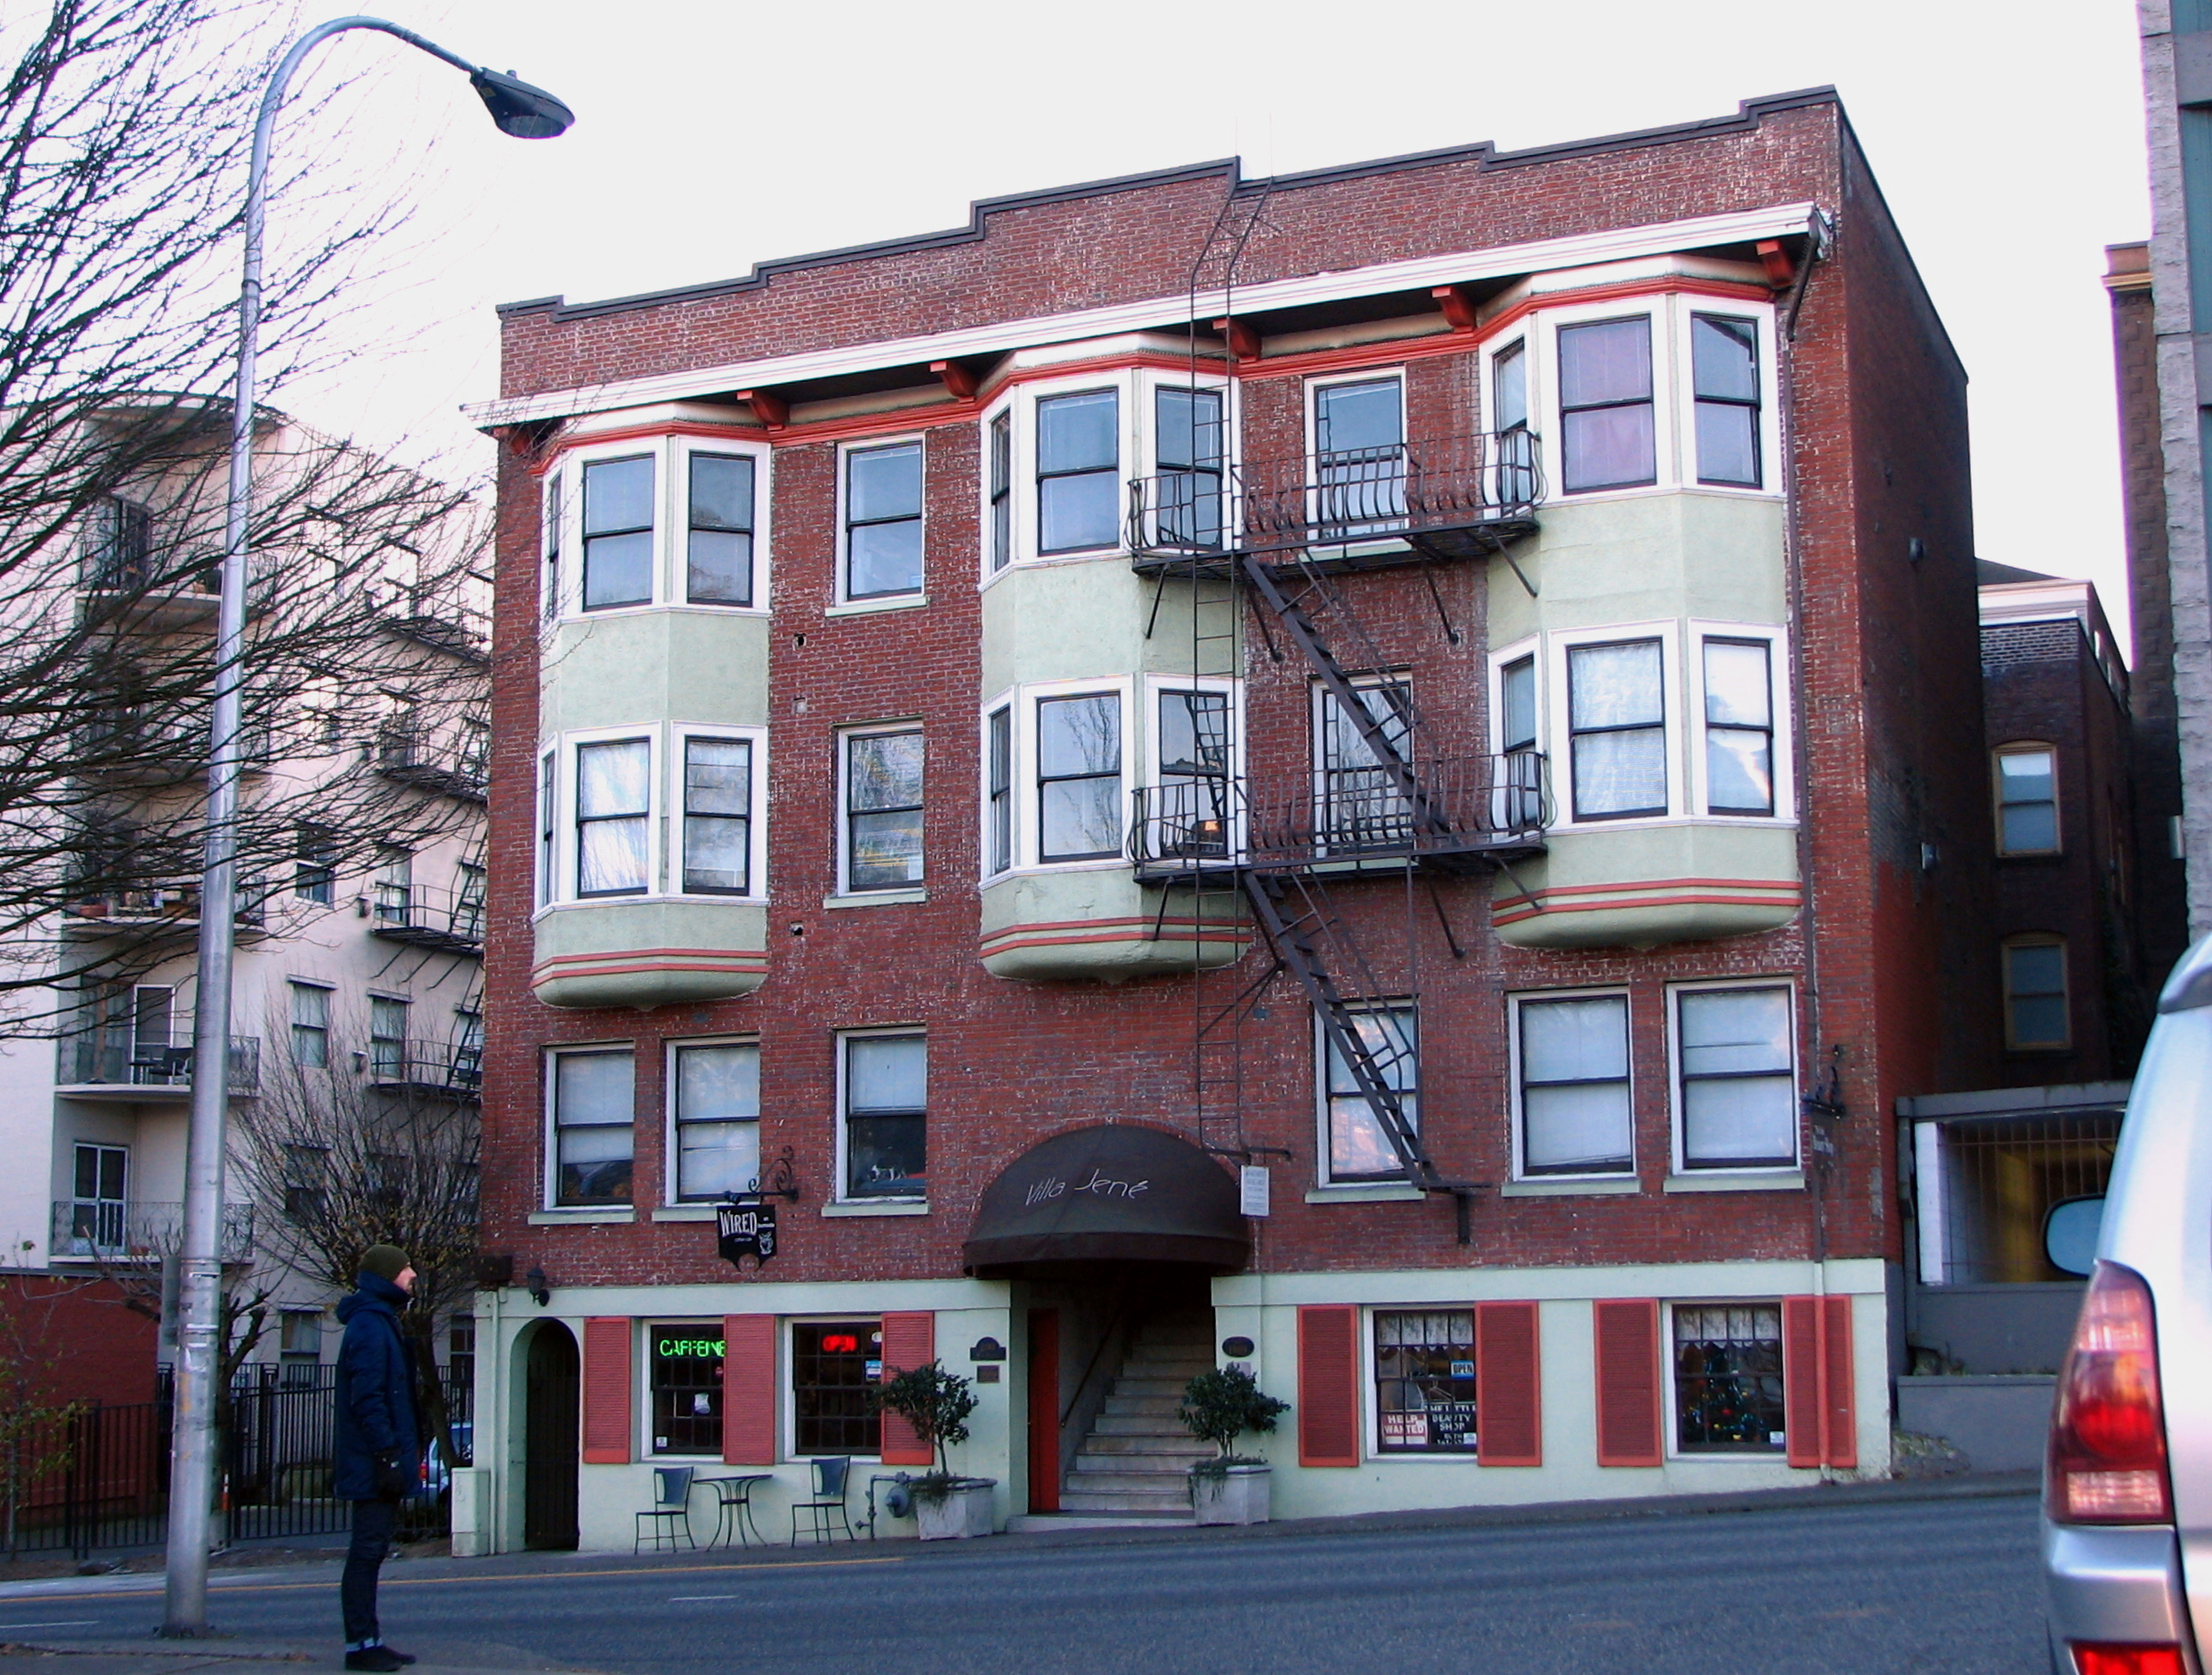 file:meredith apartments - portland oregon - wikimedia commons